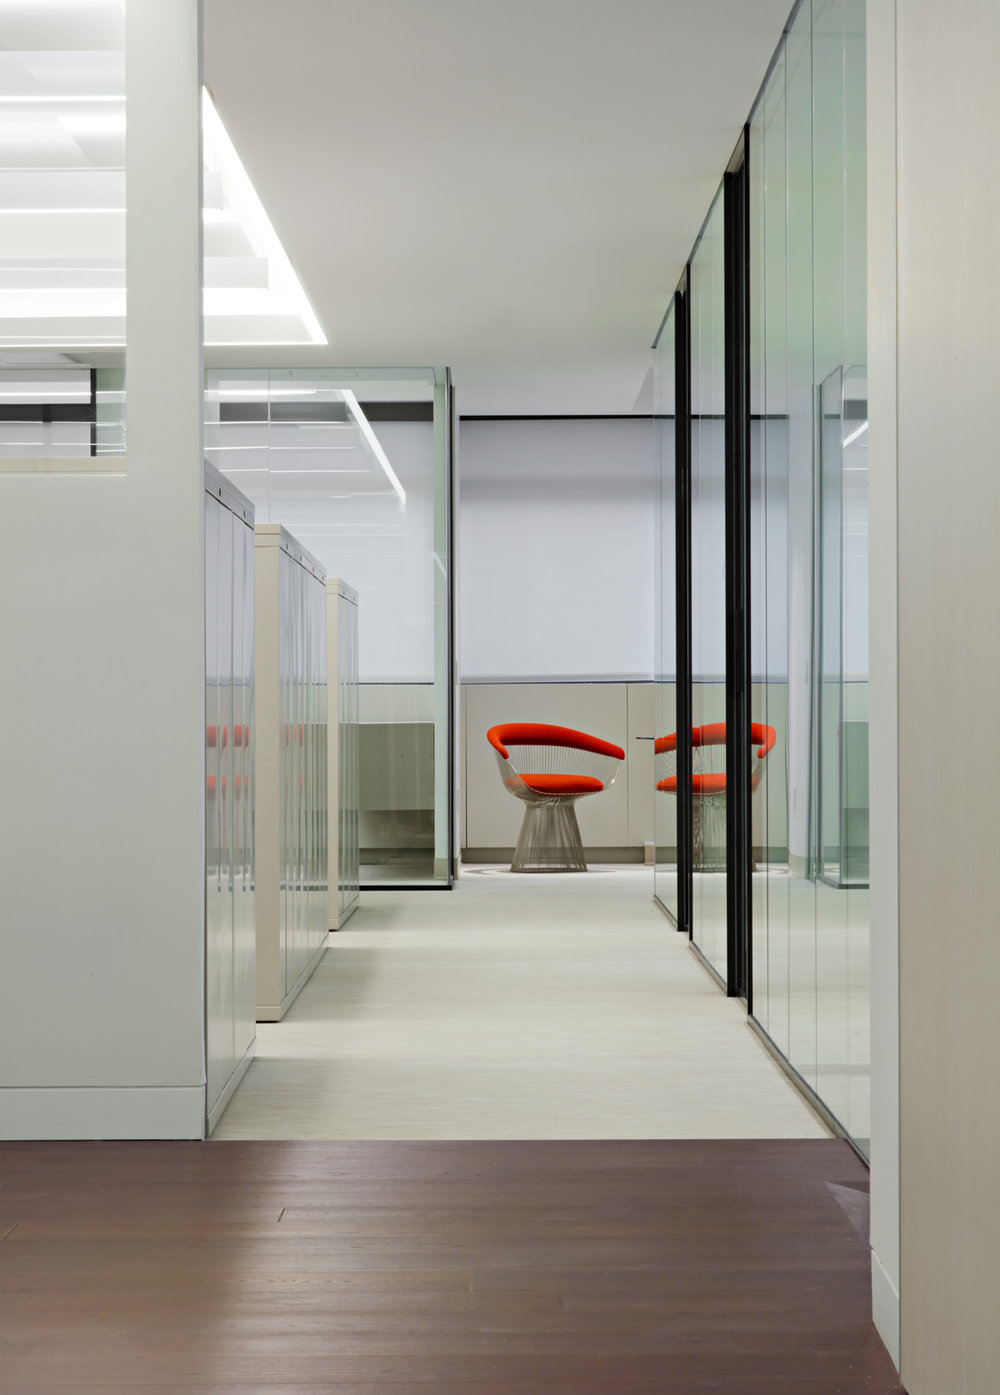 Orange cushioned chair at the end of an office hallway at Symrise, New York. MEP designed by 2LS Consulting Engineering.